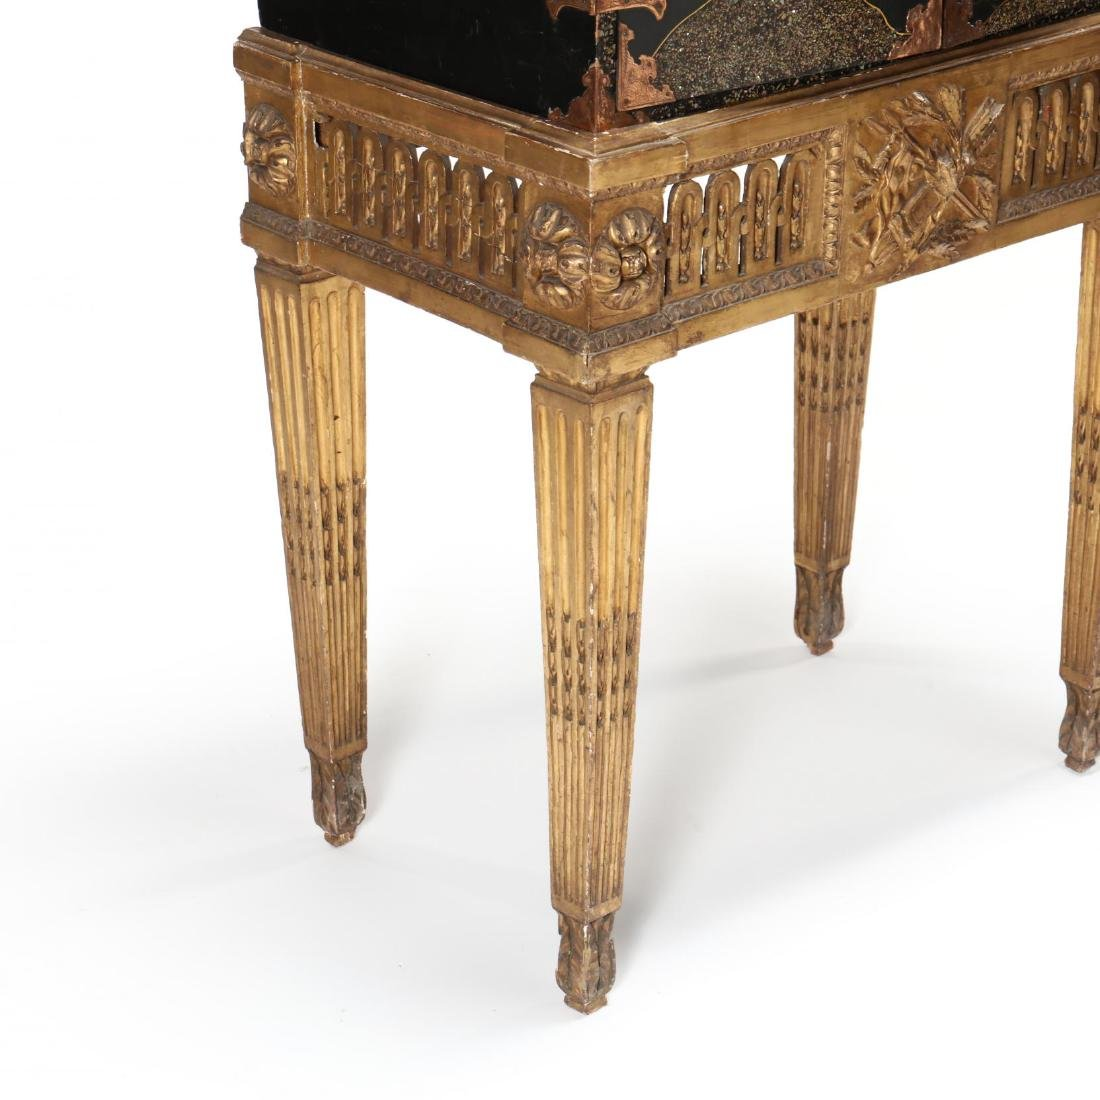 A Japanese Lacquered Cabinet on a Carved Giltwood Stand - 5